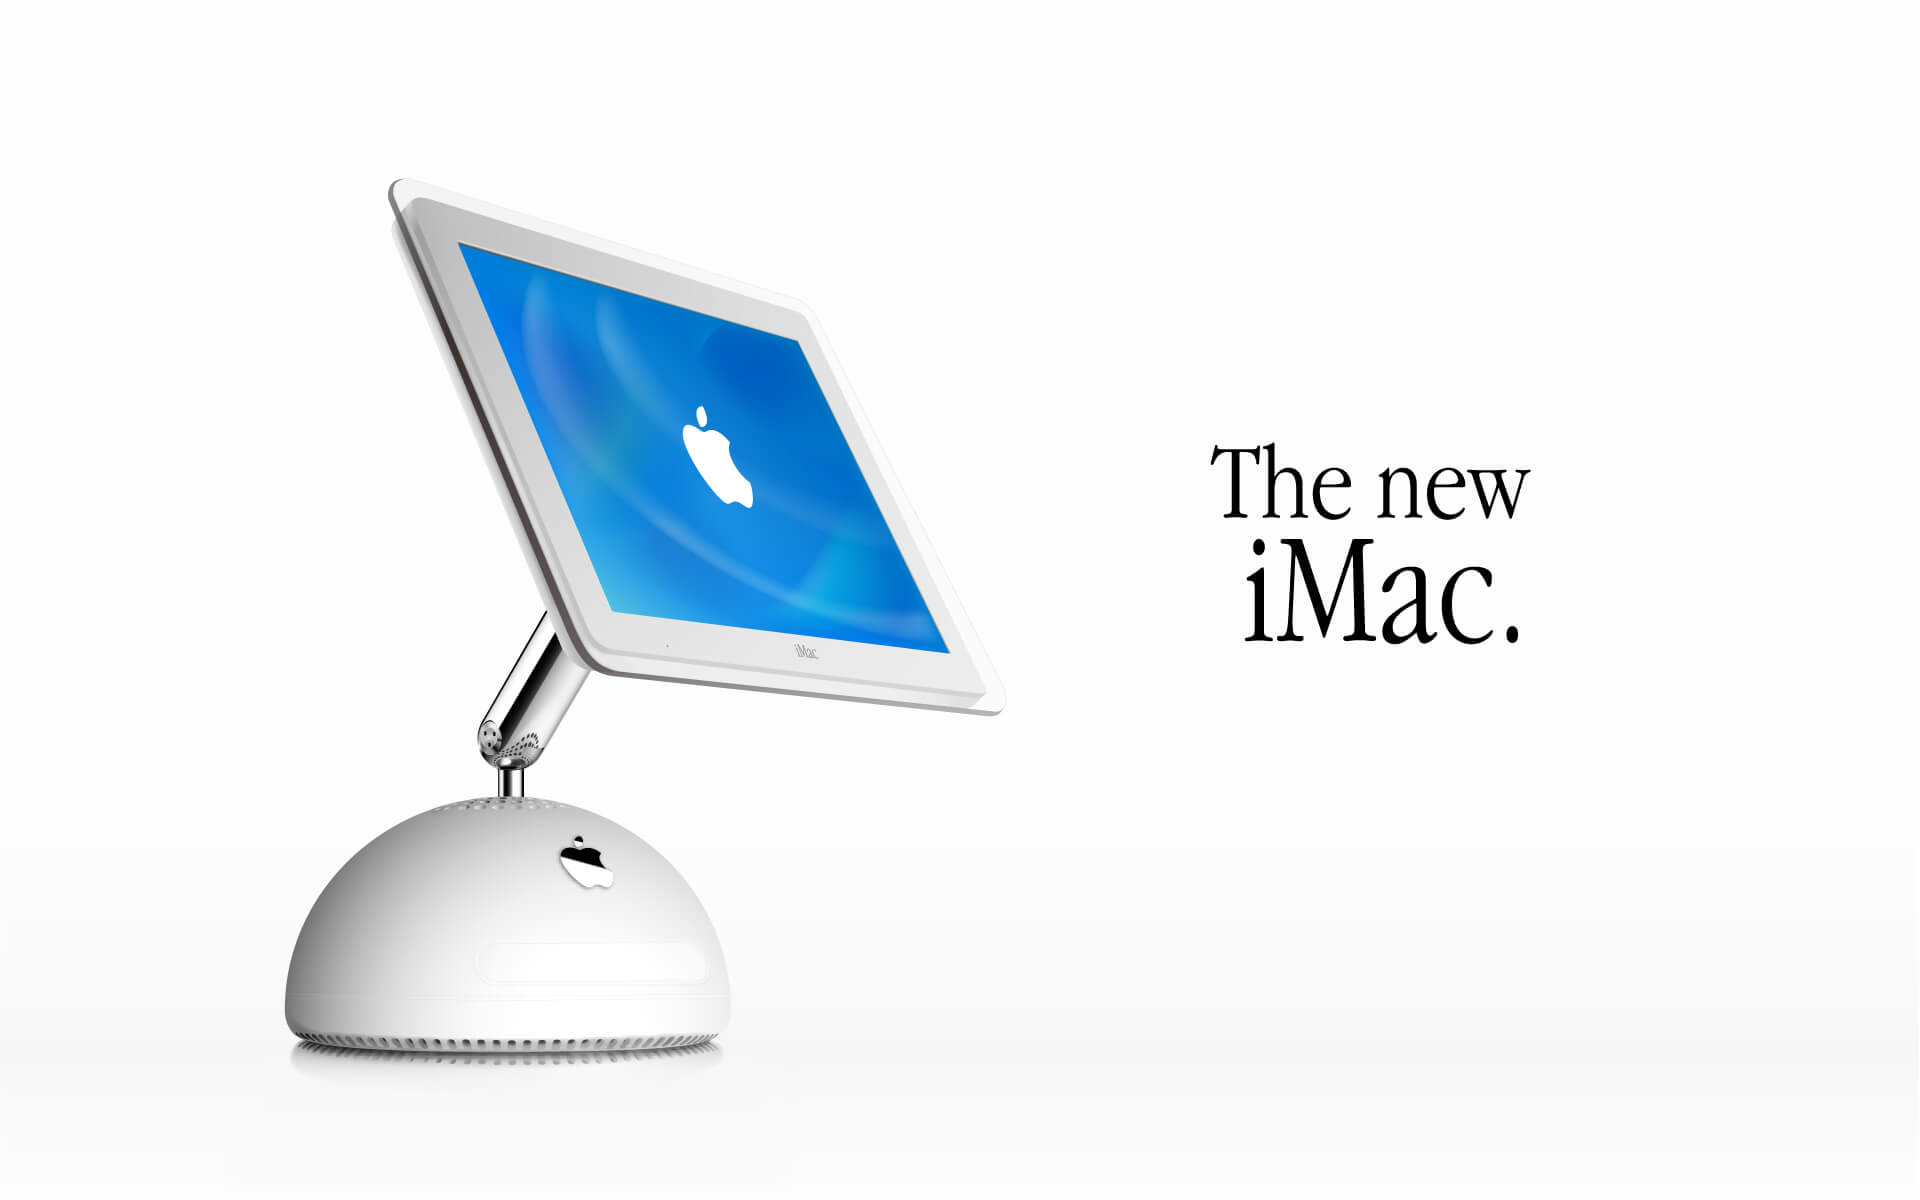 The best presentation of Apple in its history